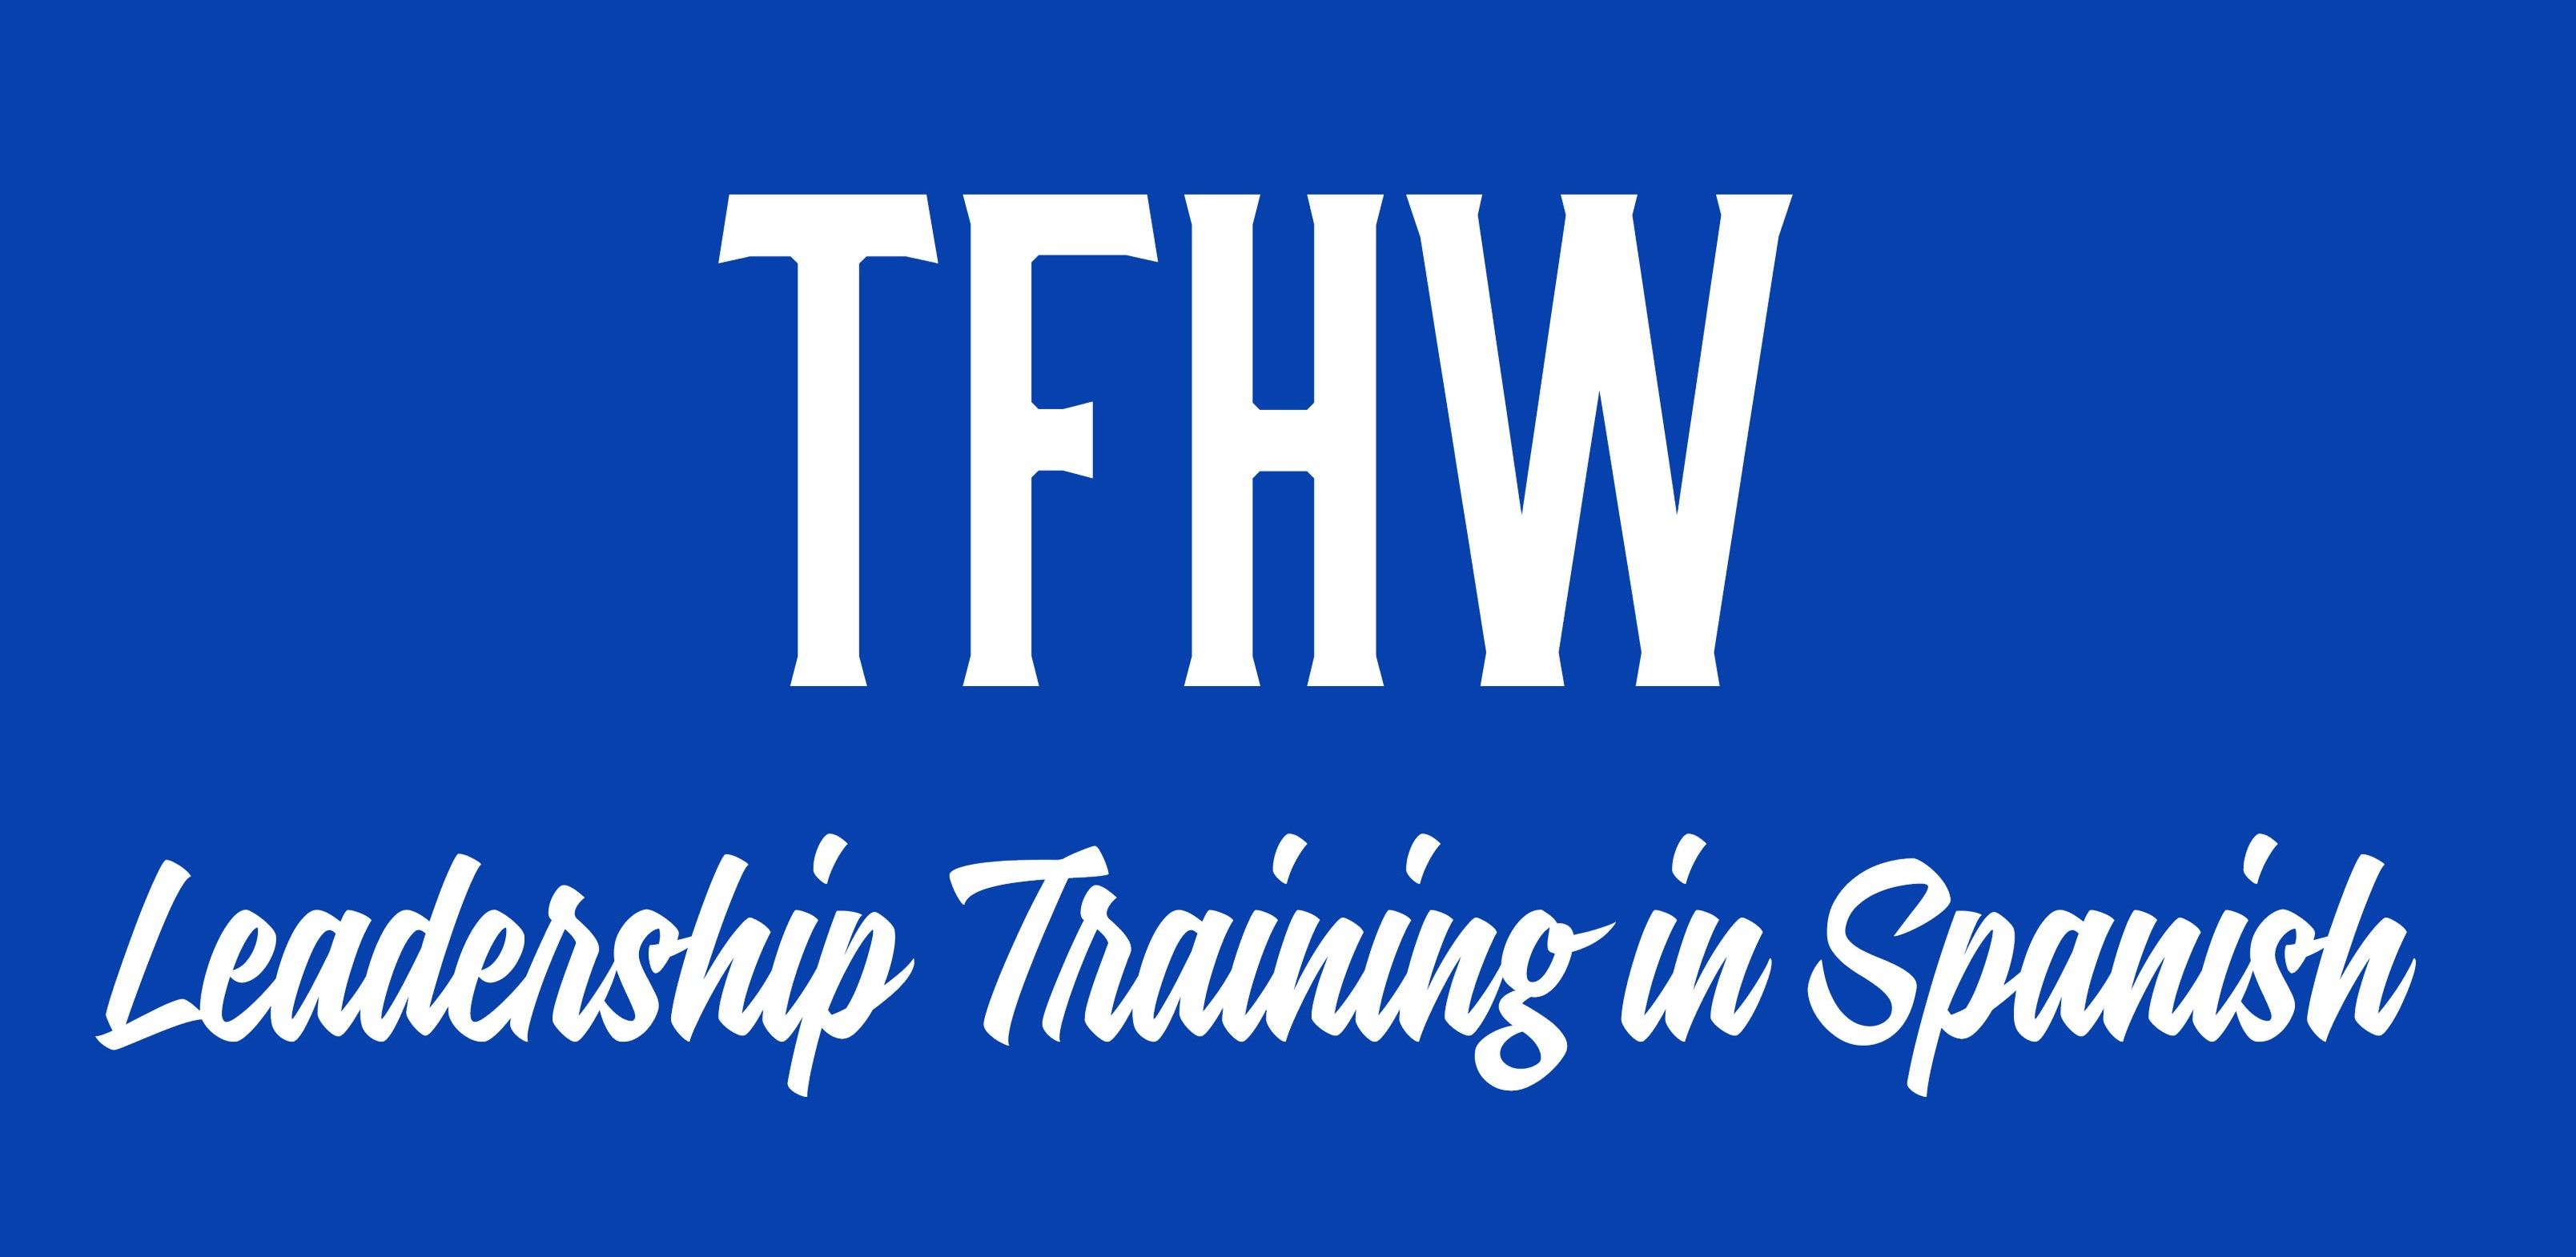 Training for Hispanics in the Workplace – Leadership Training for Spanish Speaking Supervisors